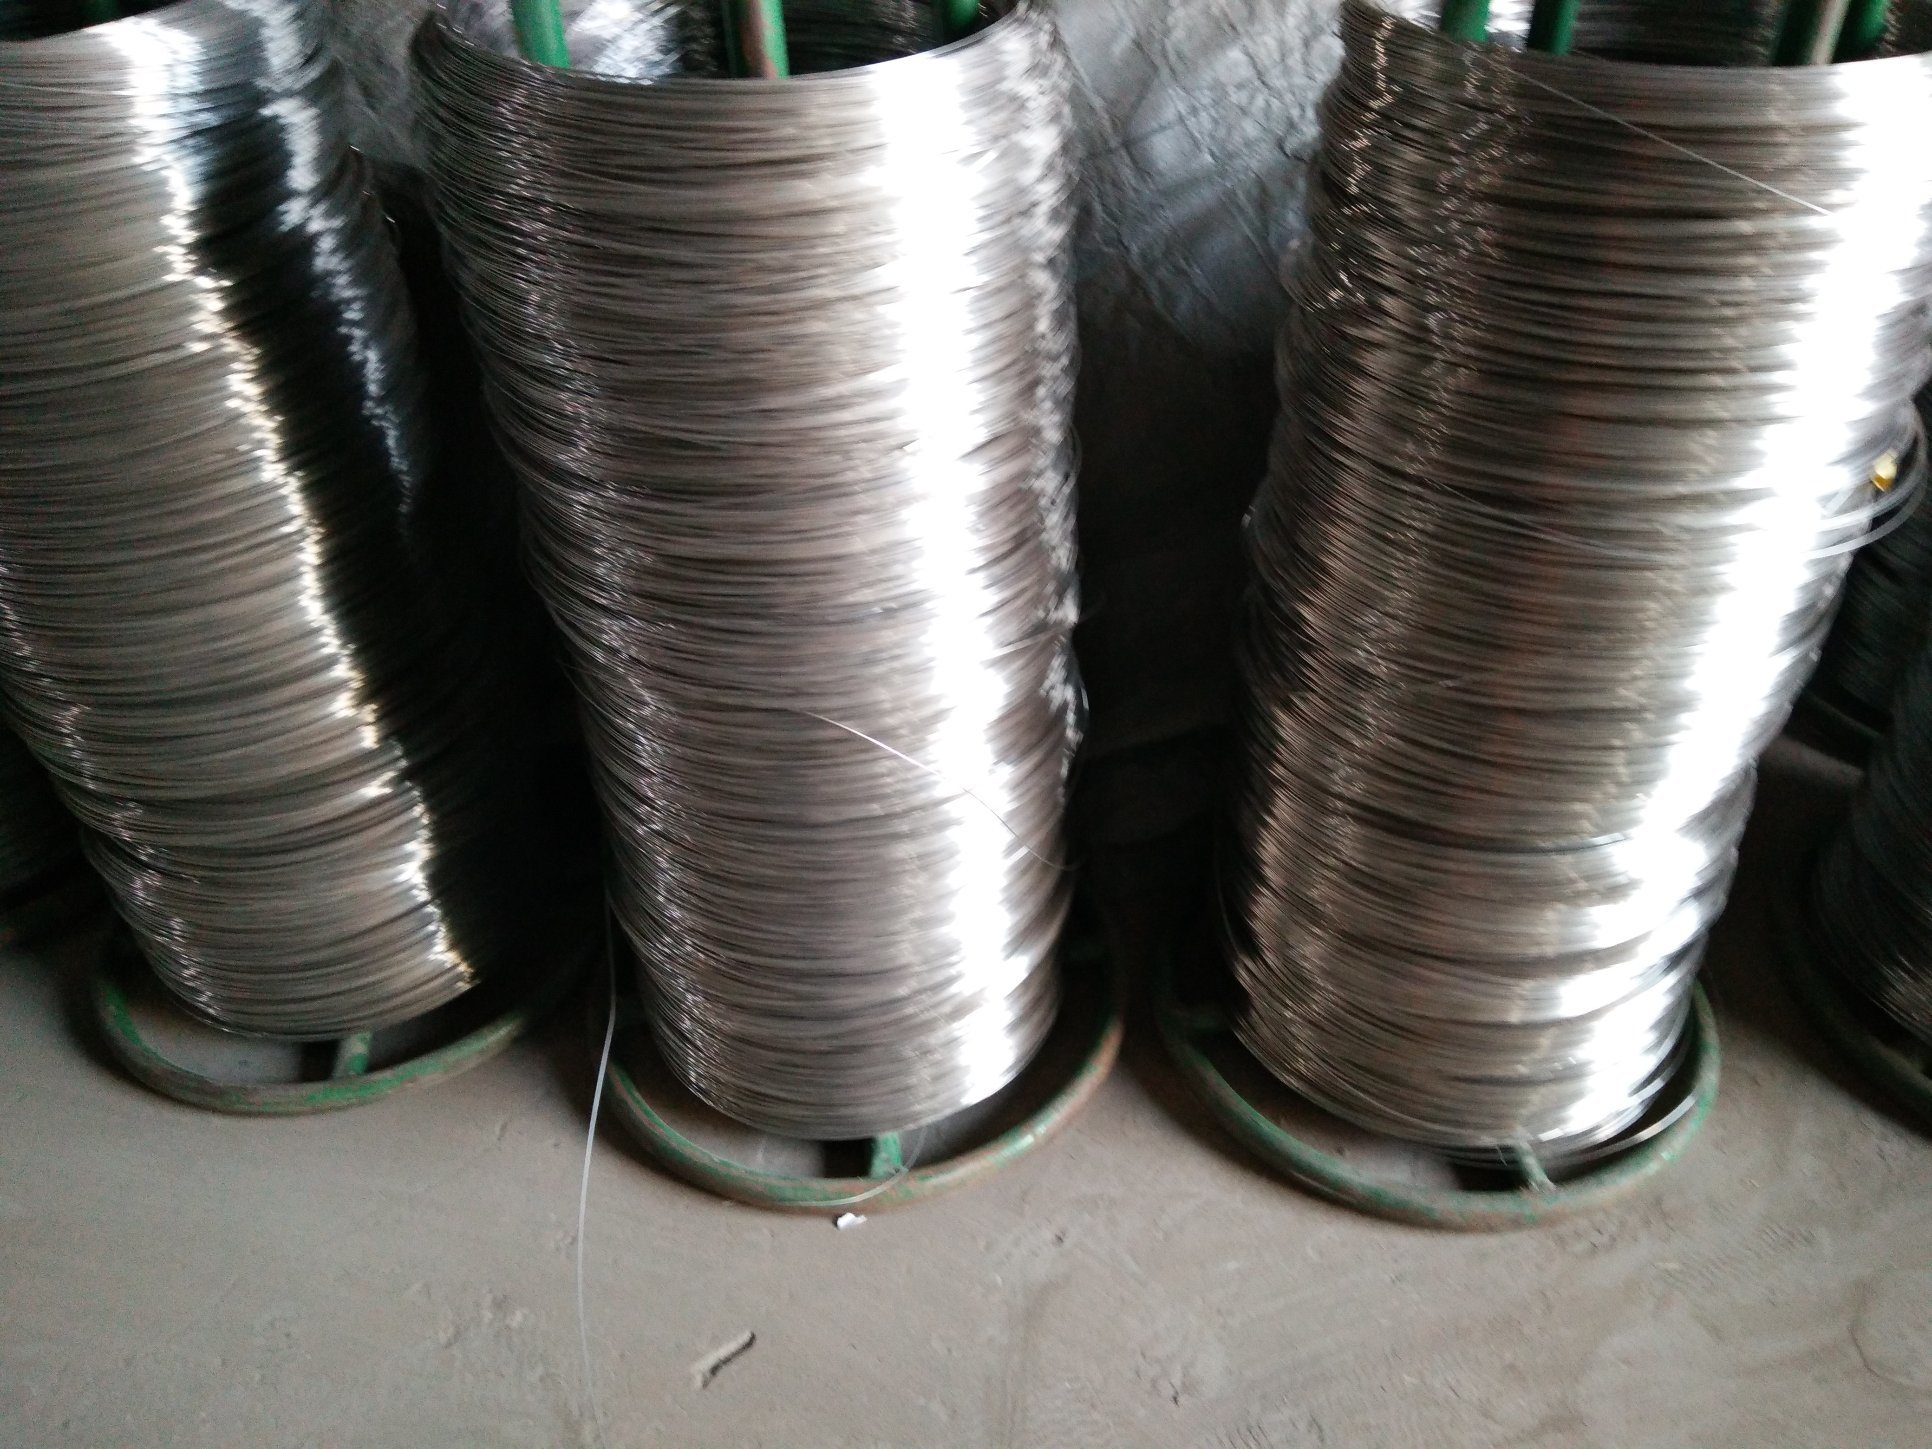 China Soft Stainless Steel Wire in Coils and Spool - China Stainless ...